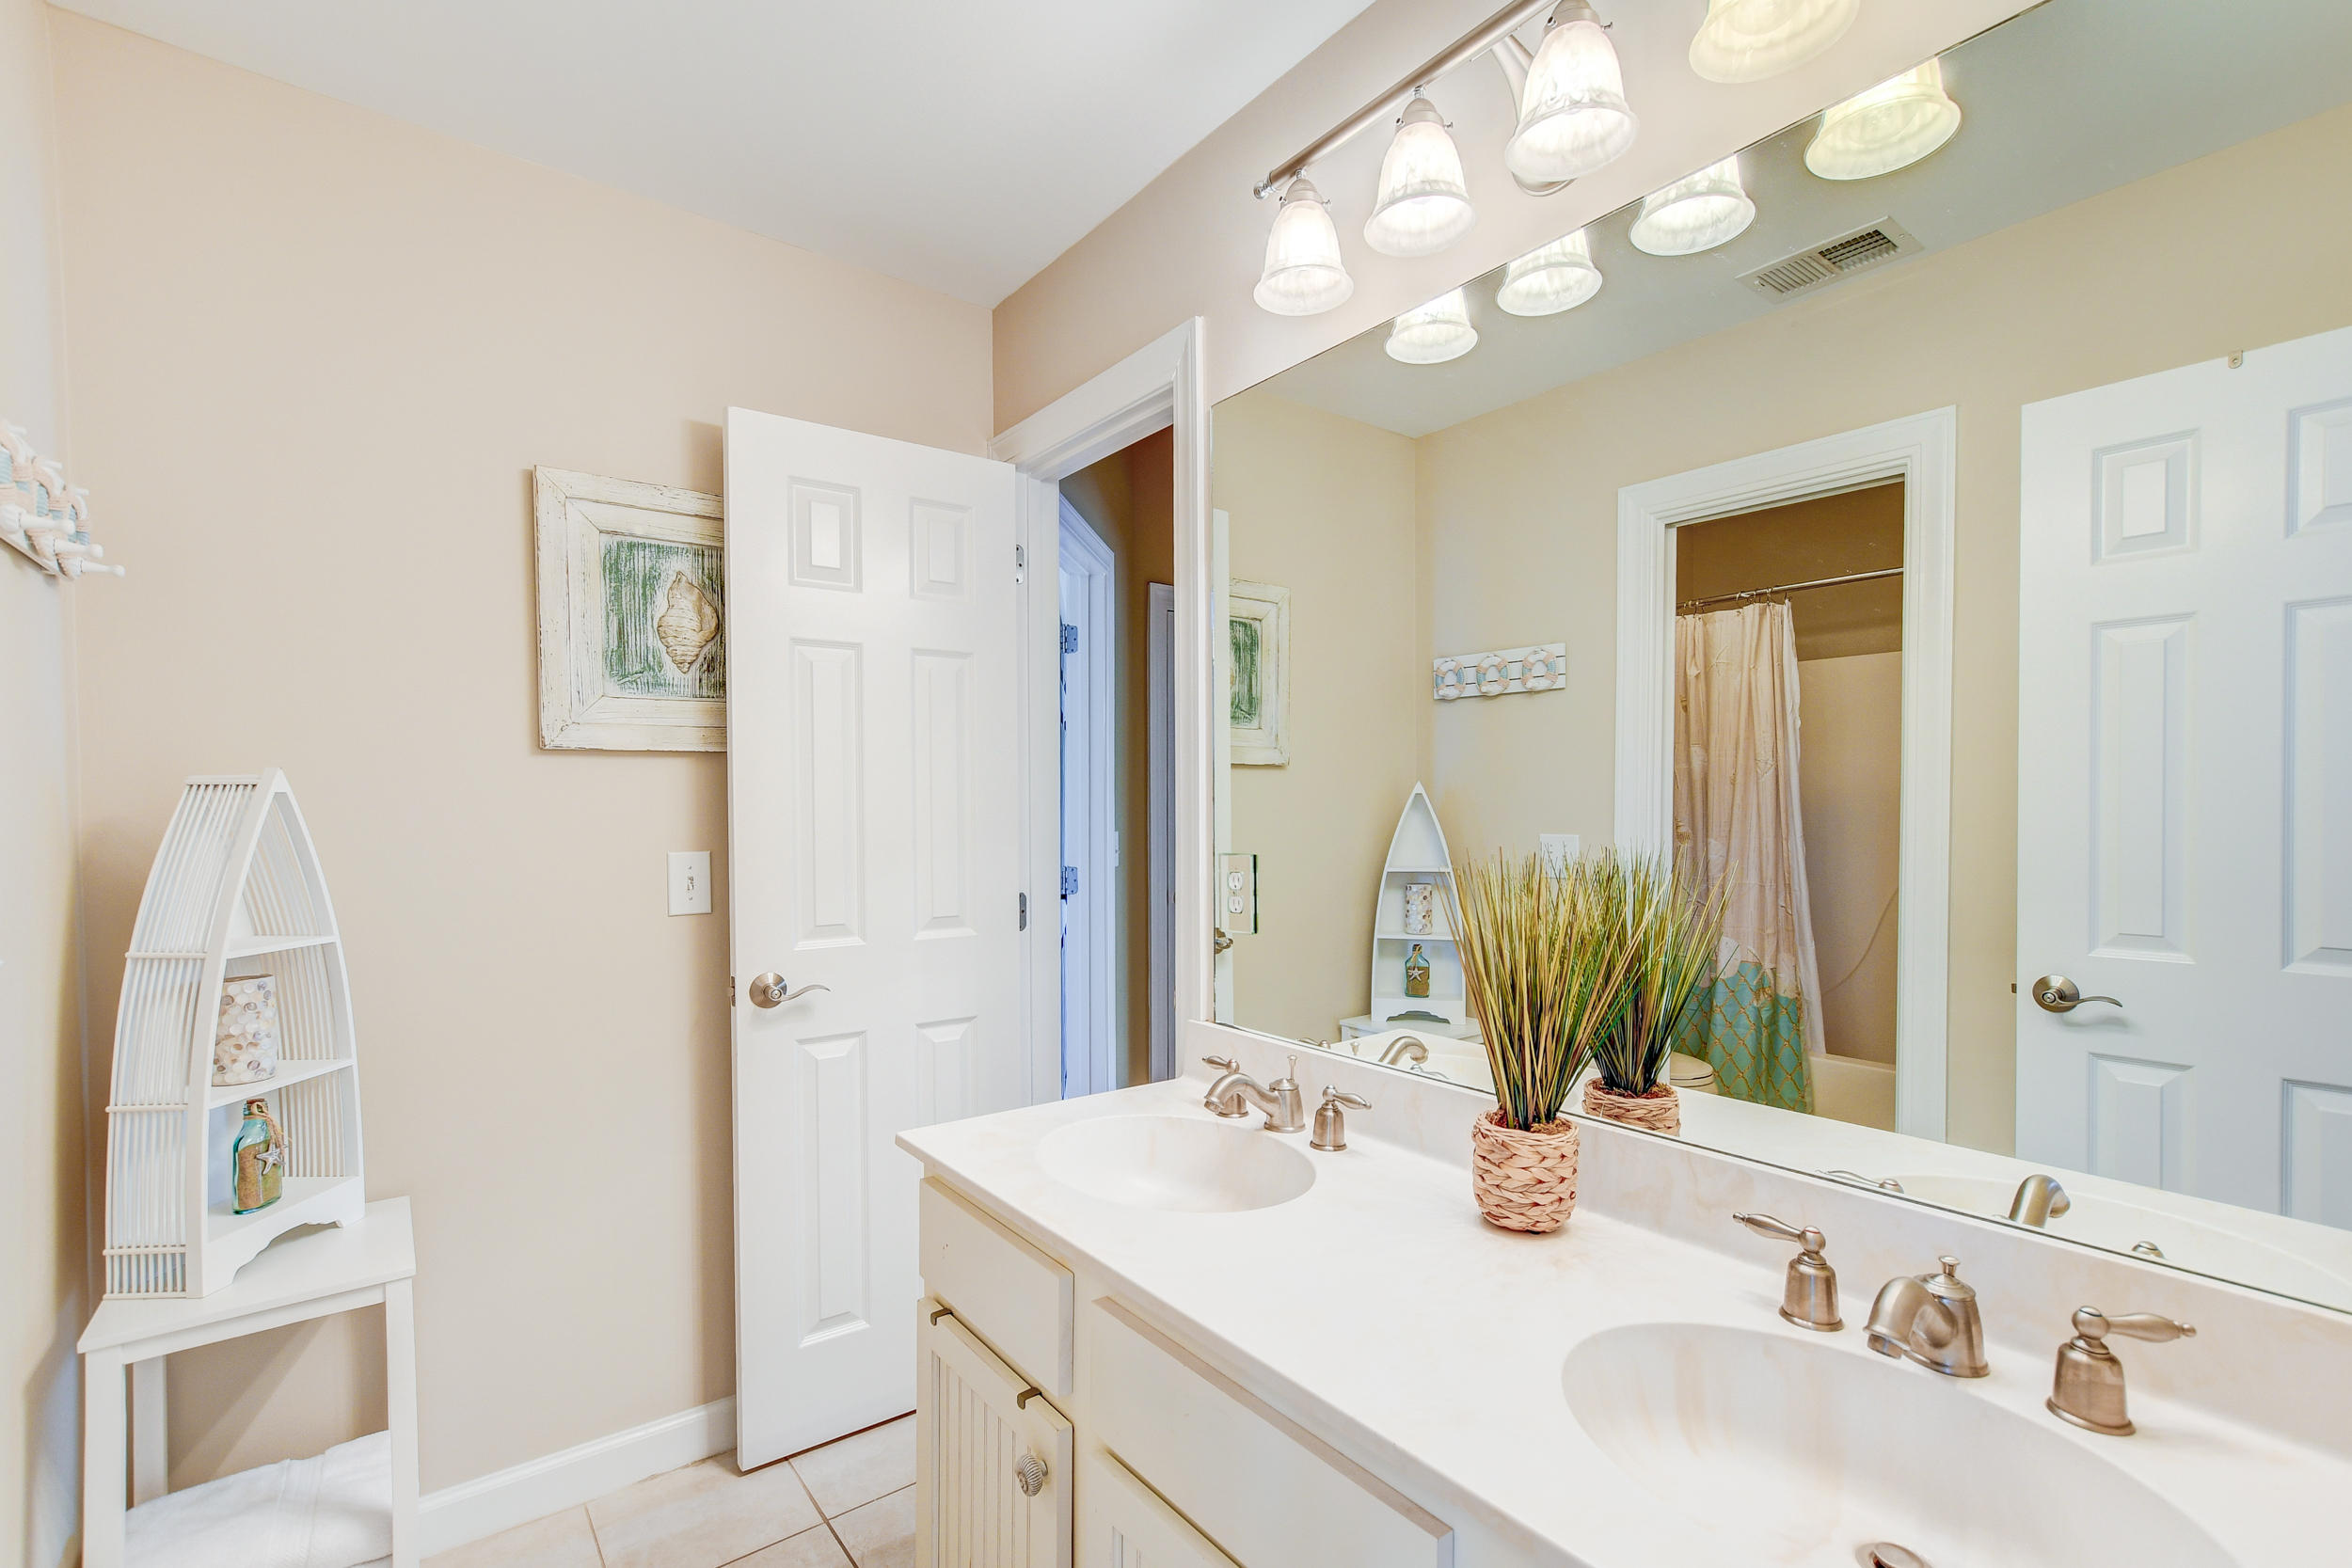 Dunes West Homes For Sale - 1500 Jacaranda, Mount Pleasant, SC - 0